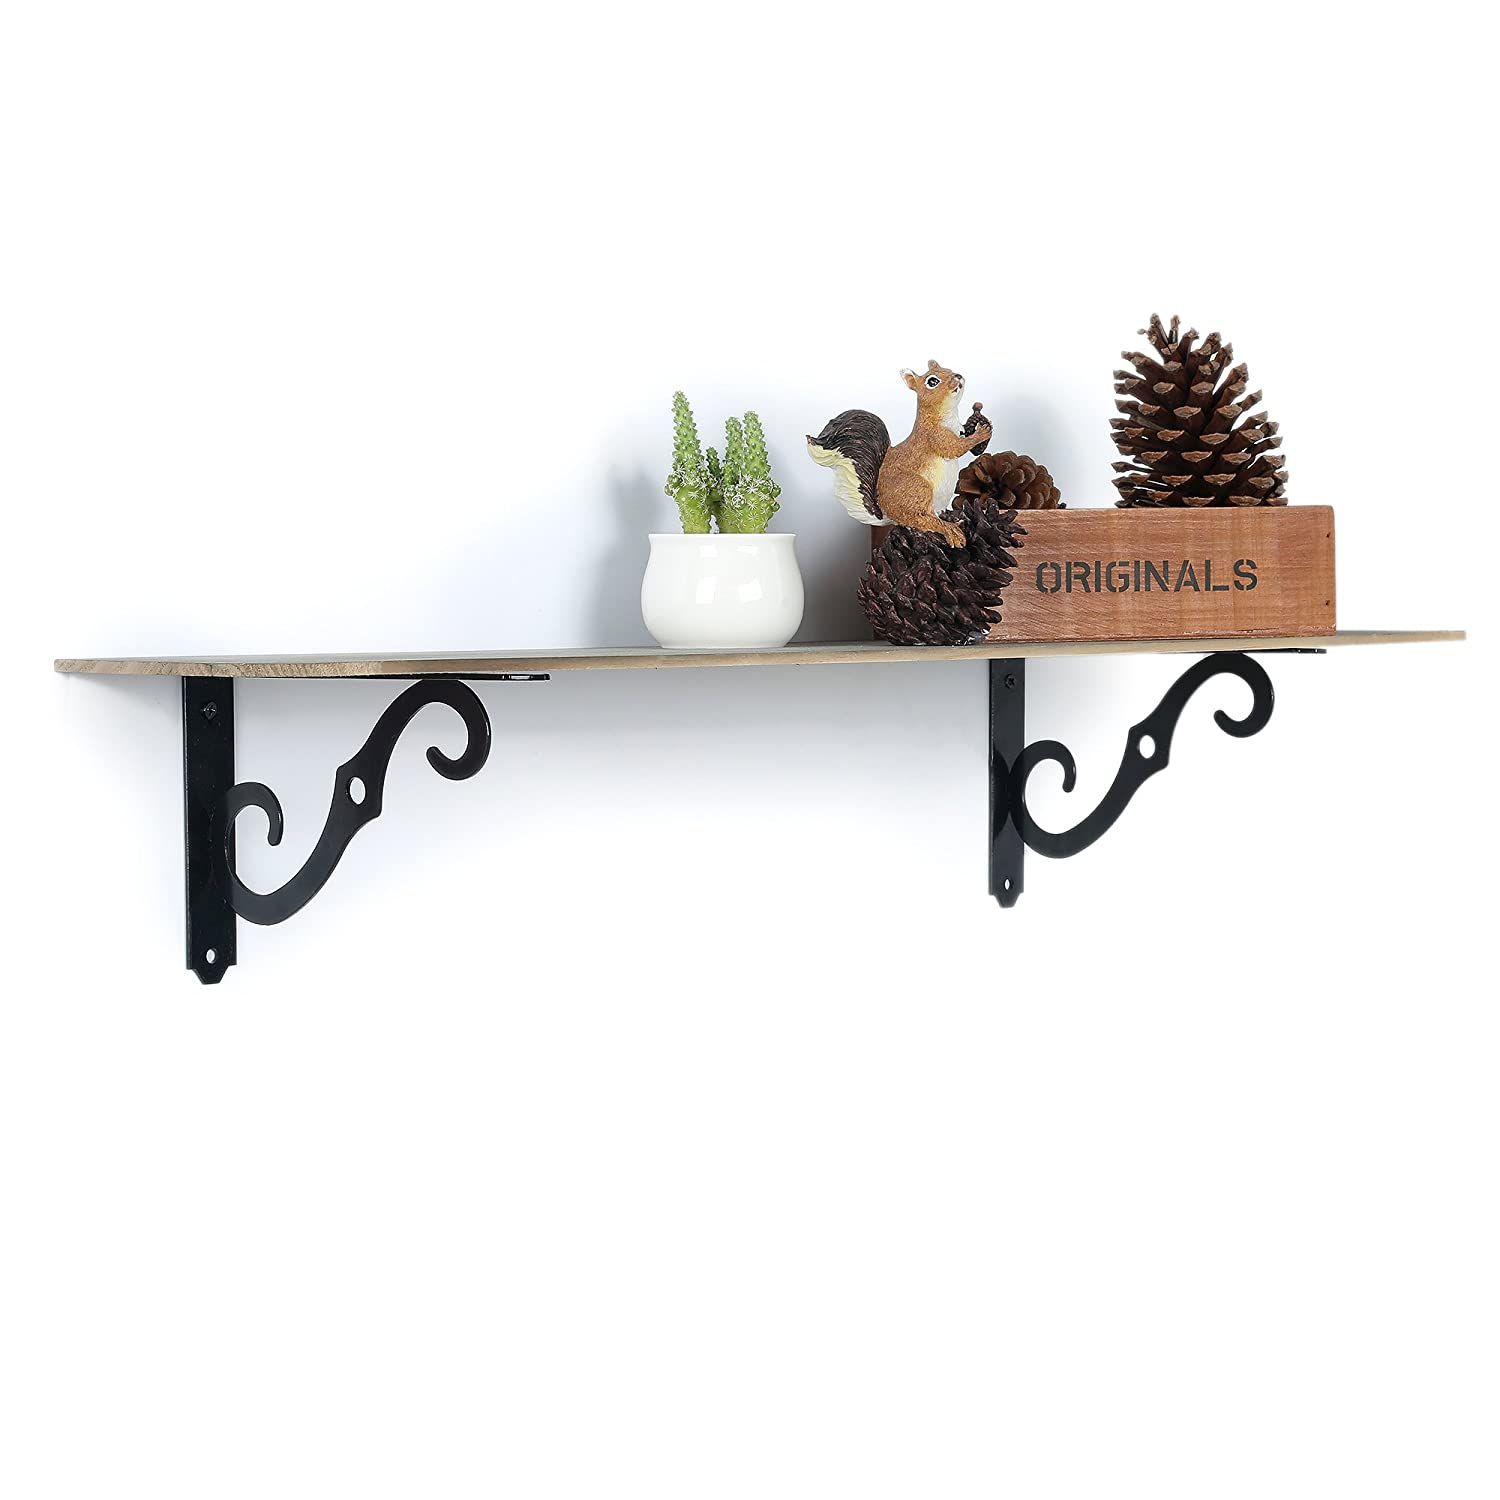 EtechMart Pack of 2 Wall Brackets Shelf Support for Storage ...